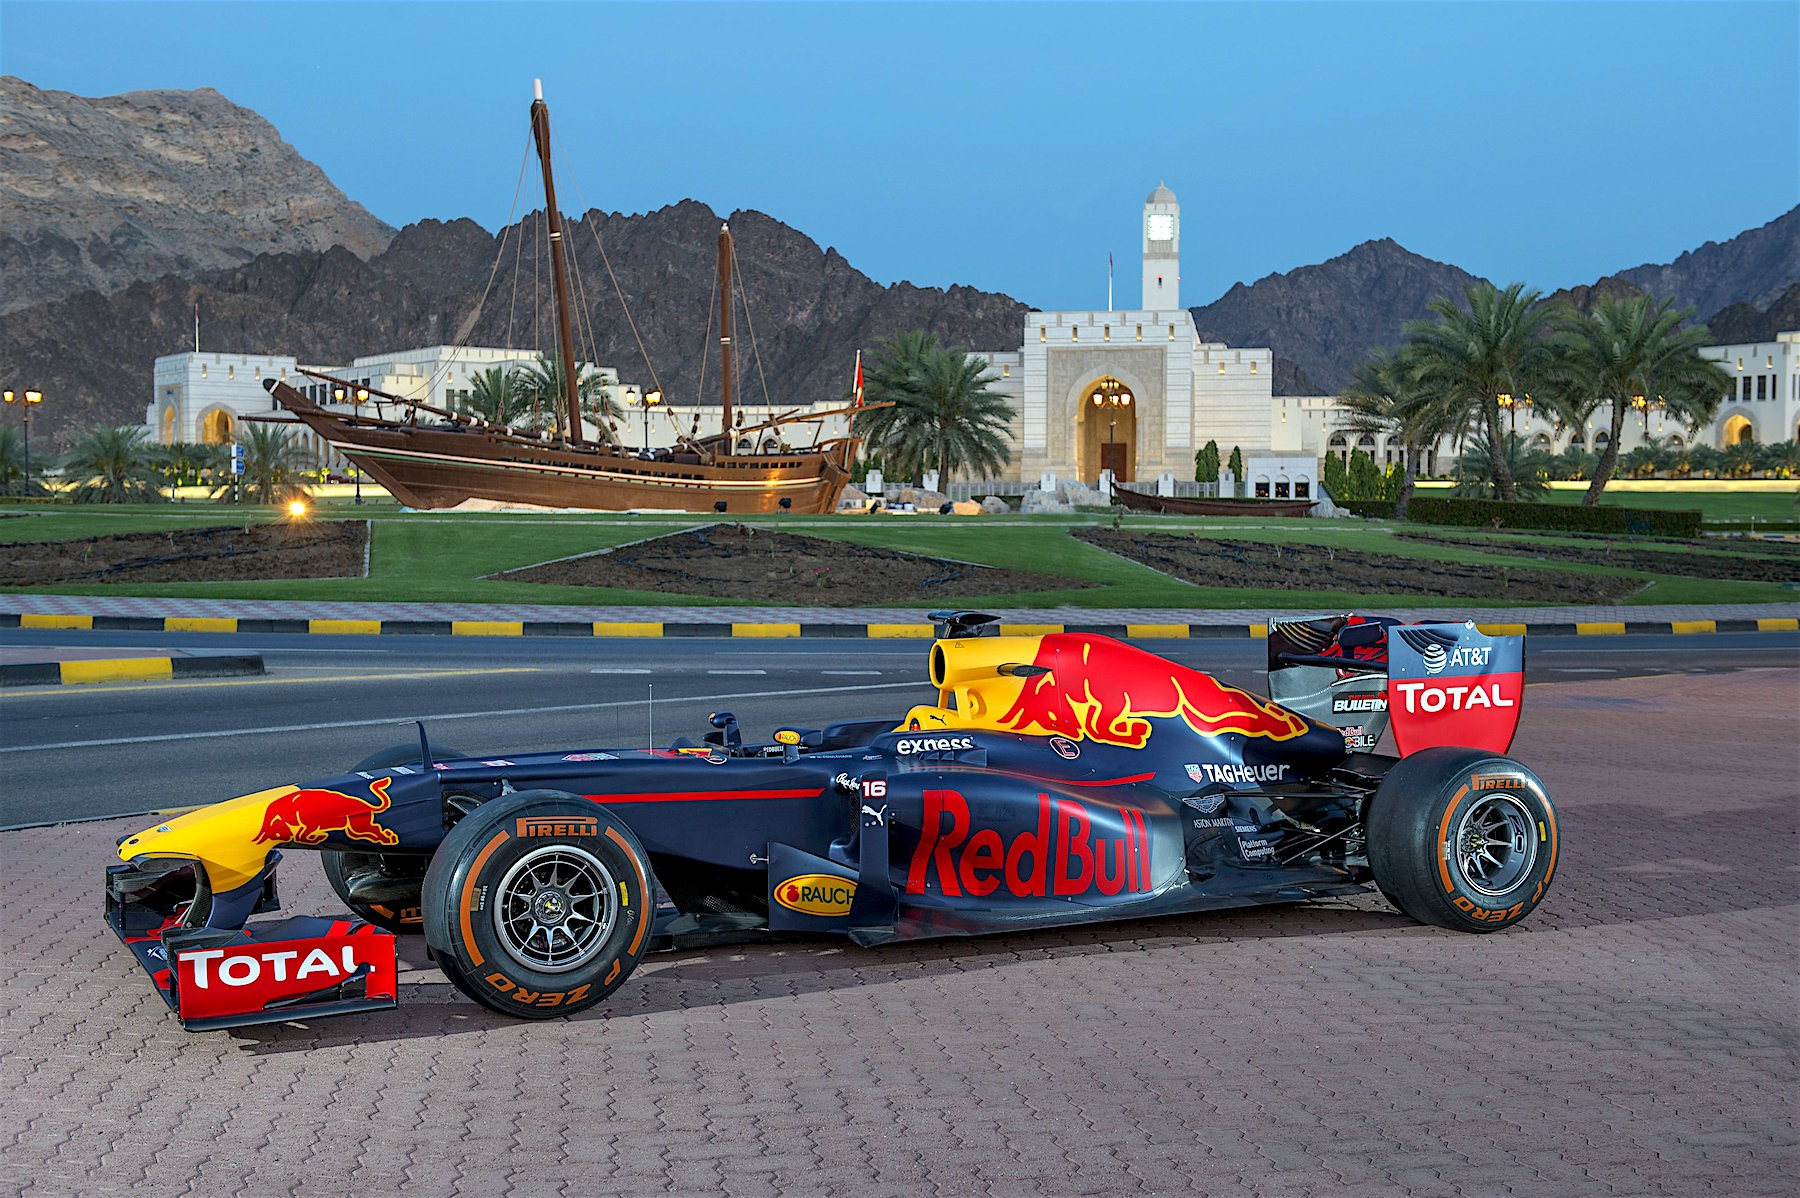 The RB7 in Muscat, Oman